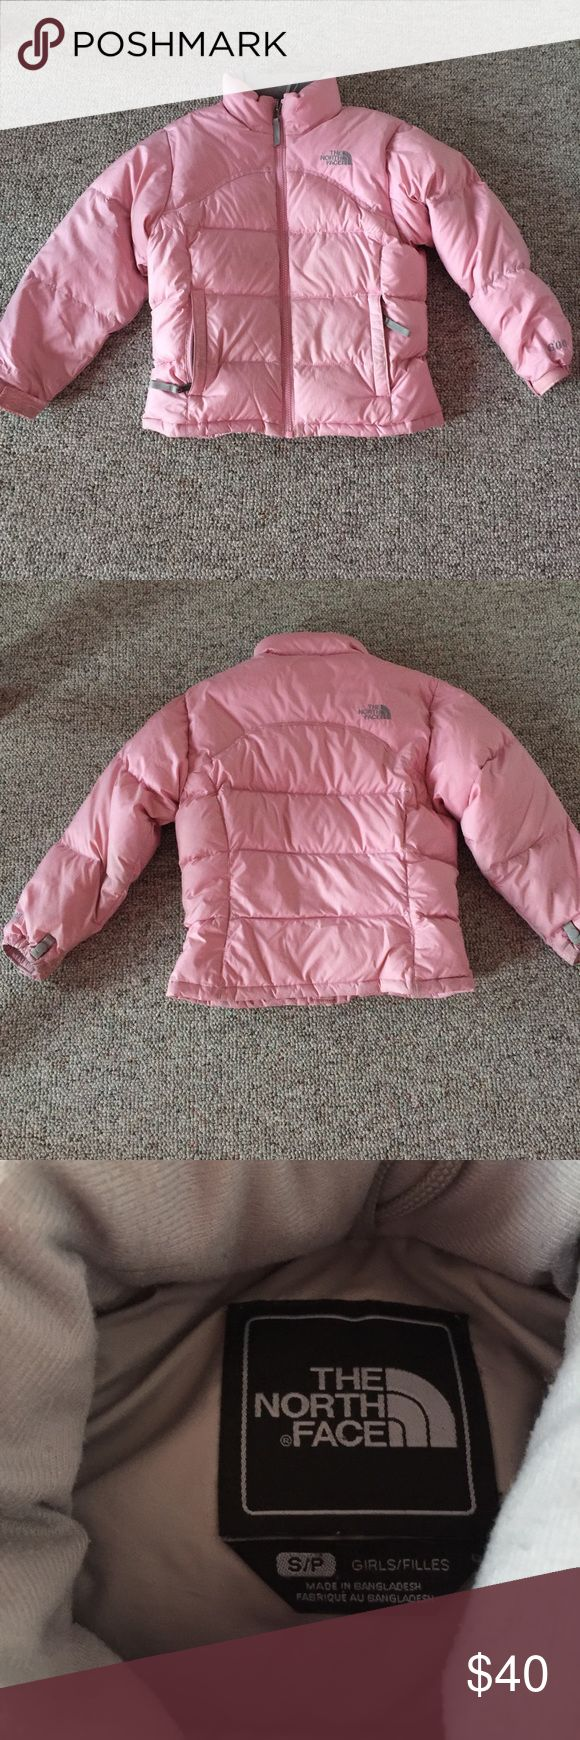 Girls North Face Winter Coat Cue pastel pink North Face Winter coat for girls. Perfect for the cold and gently used. US ONLY!! The North Face Jackets & Coats